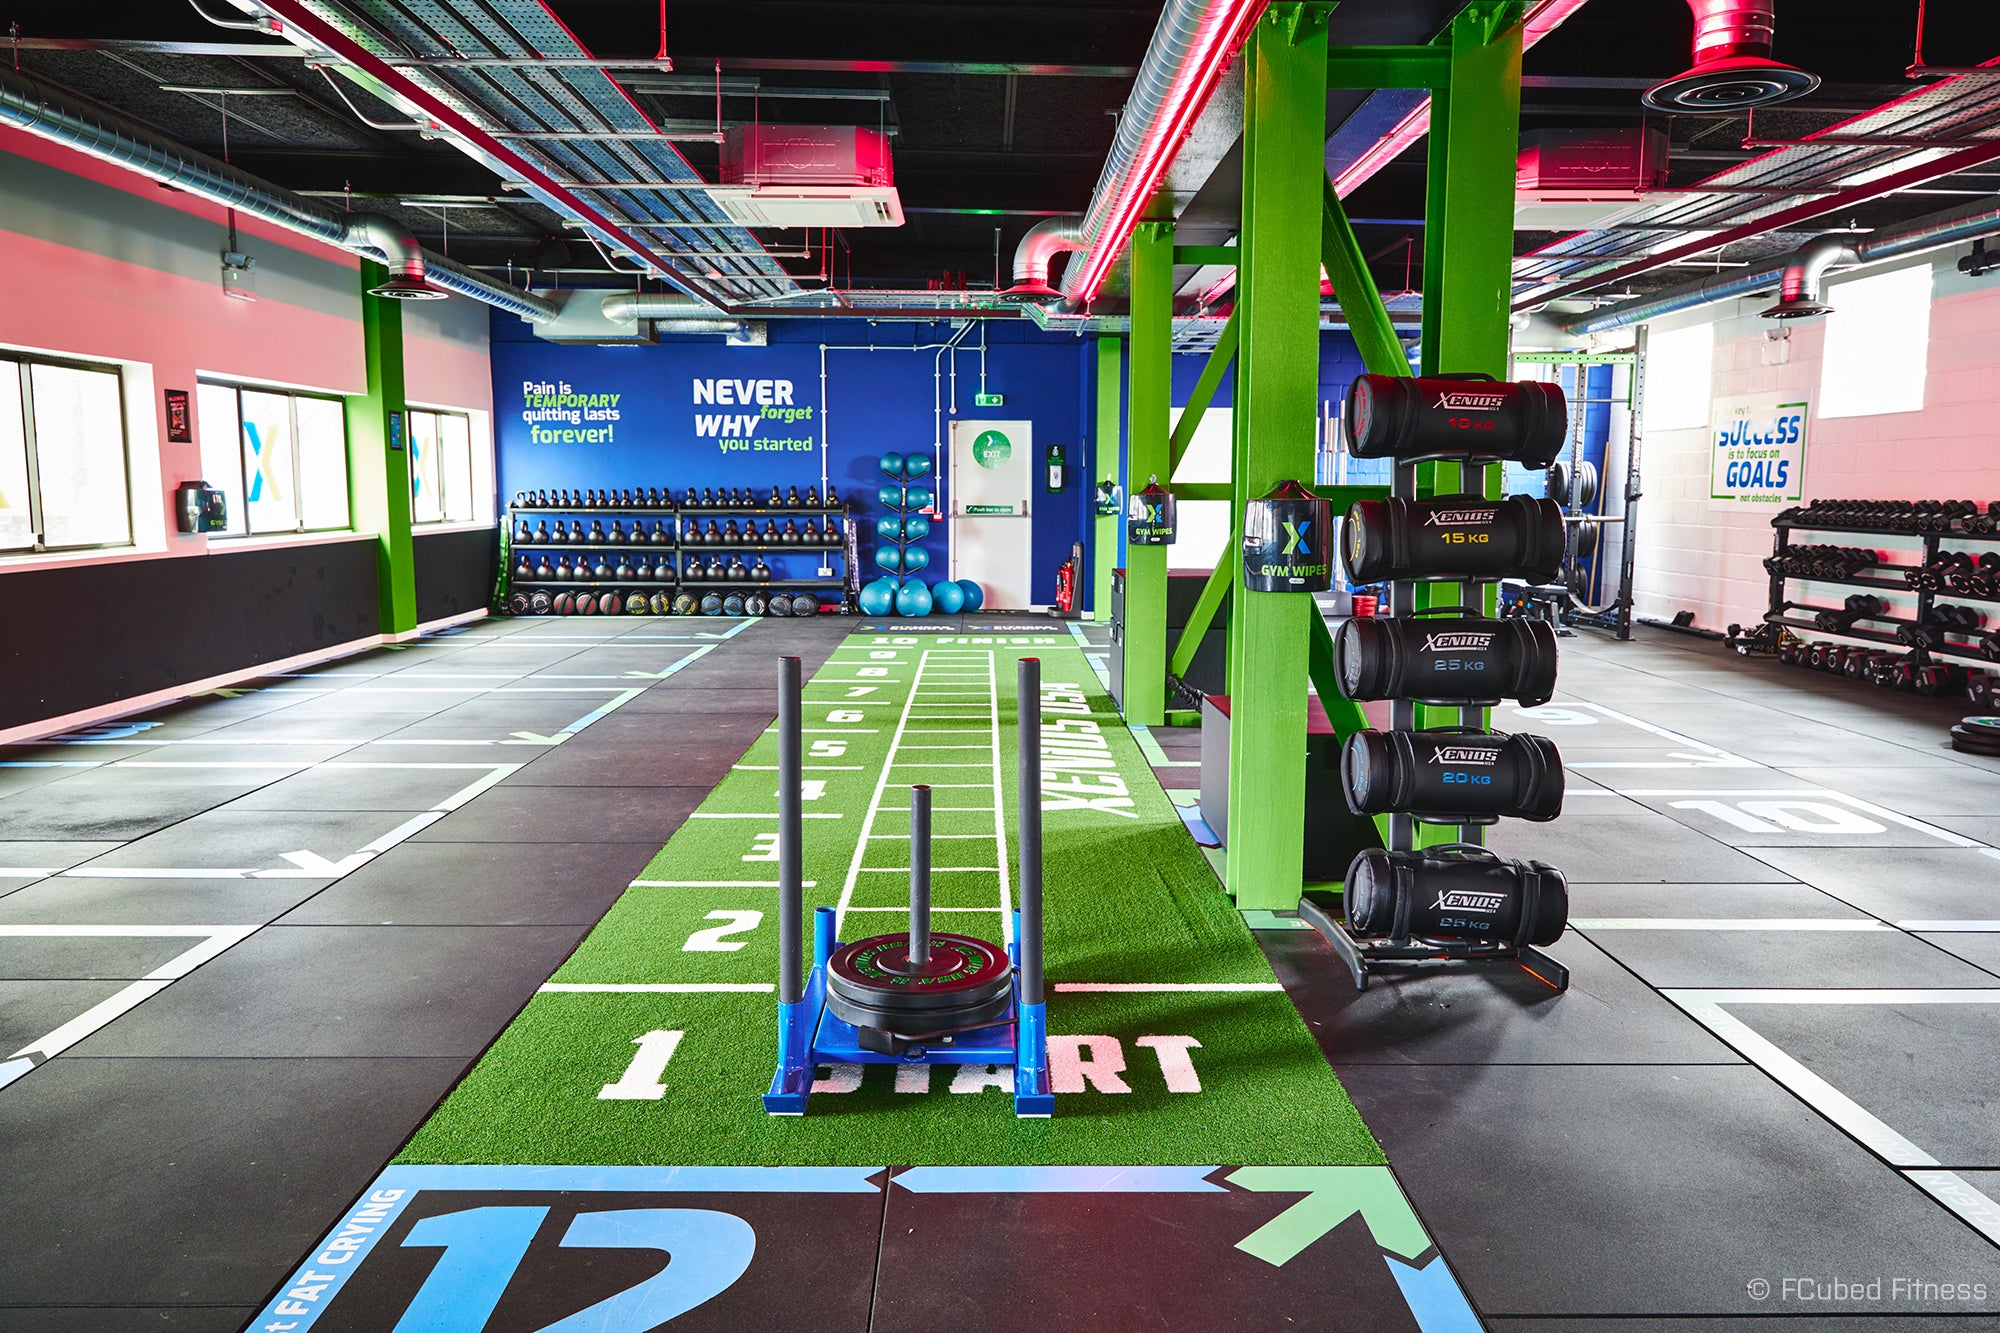 Layout and flooring at The Fitness Experts, Basingstoke